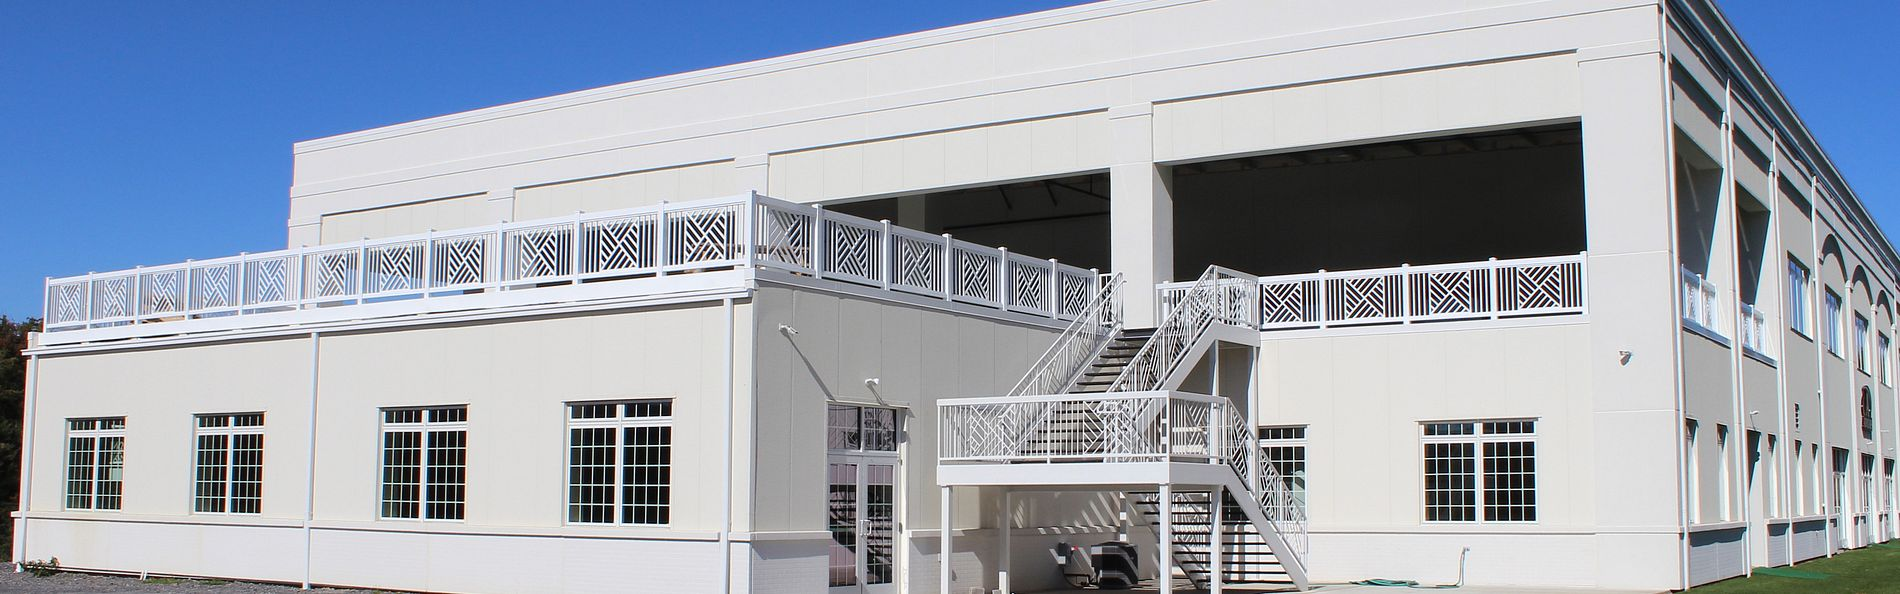 New 53,400 sq ft, two-story building finished for the New Orleans Saints to begin their preseason training camp